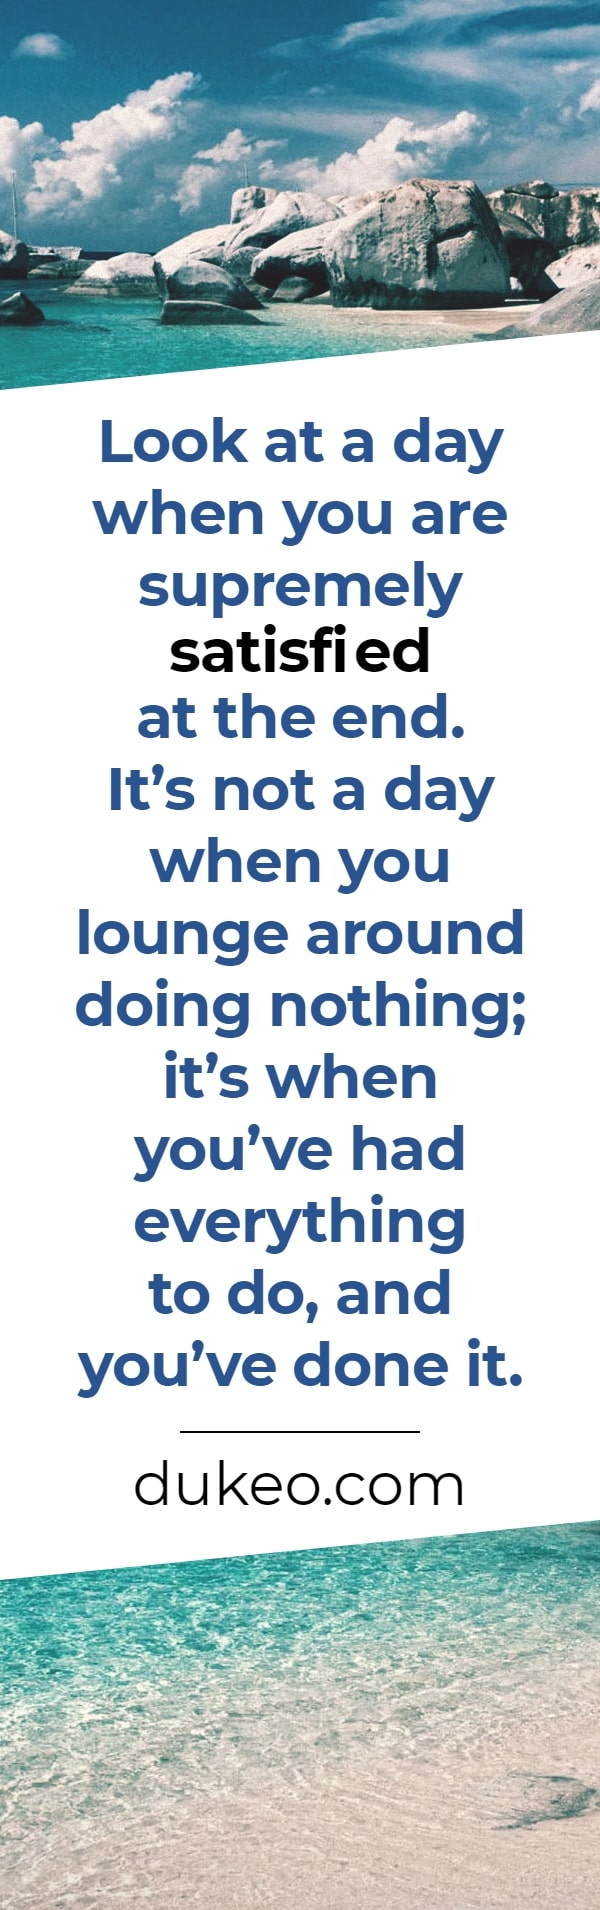 Look at a day when you are supremely satisfied at the end. It's not a day when you lounge around doing nothing; it's when you've had everything to do, and you've done it.